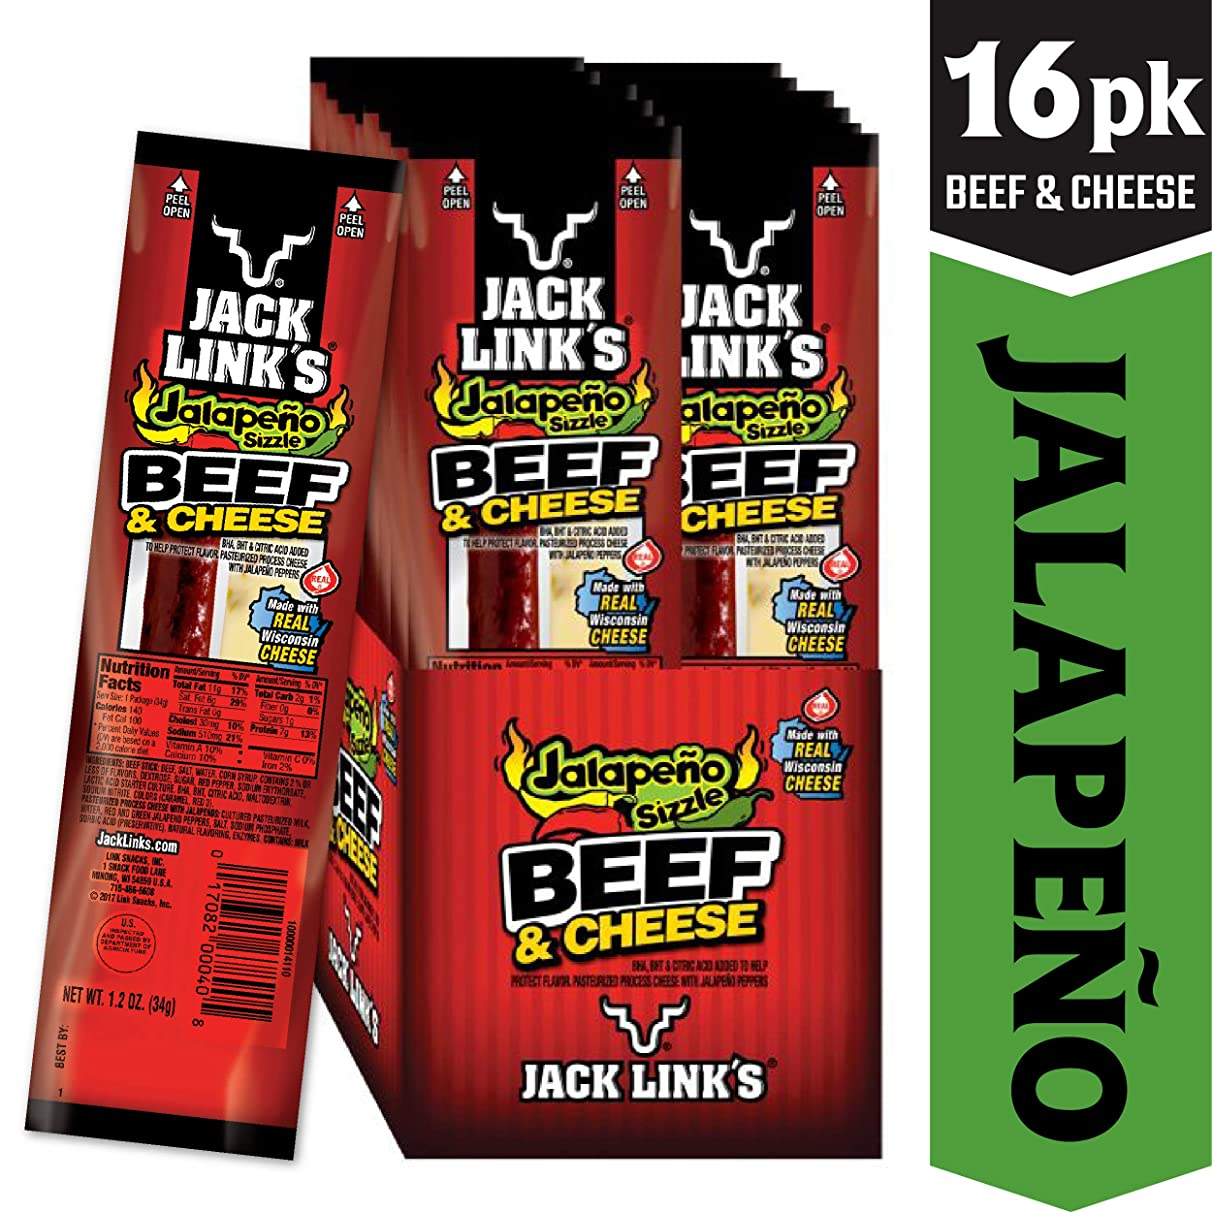 Jack Link's Combo Pack Jalapeno Sizzle Beef and Cheese Sticks Combo Pack, 1.2-Ounce (Pack of 16)